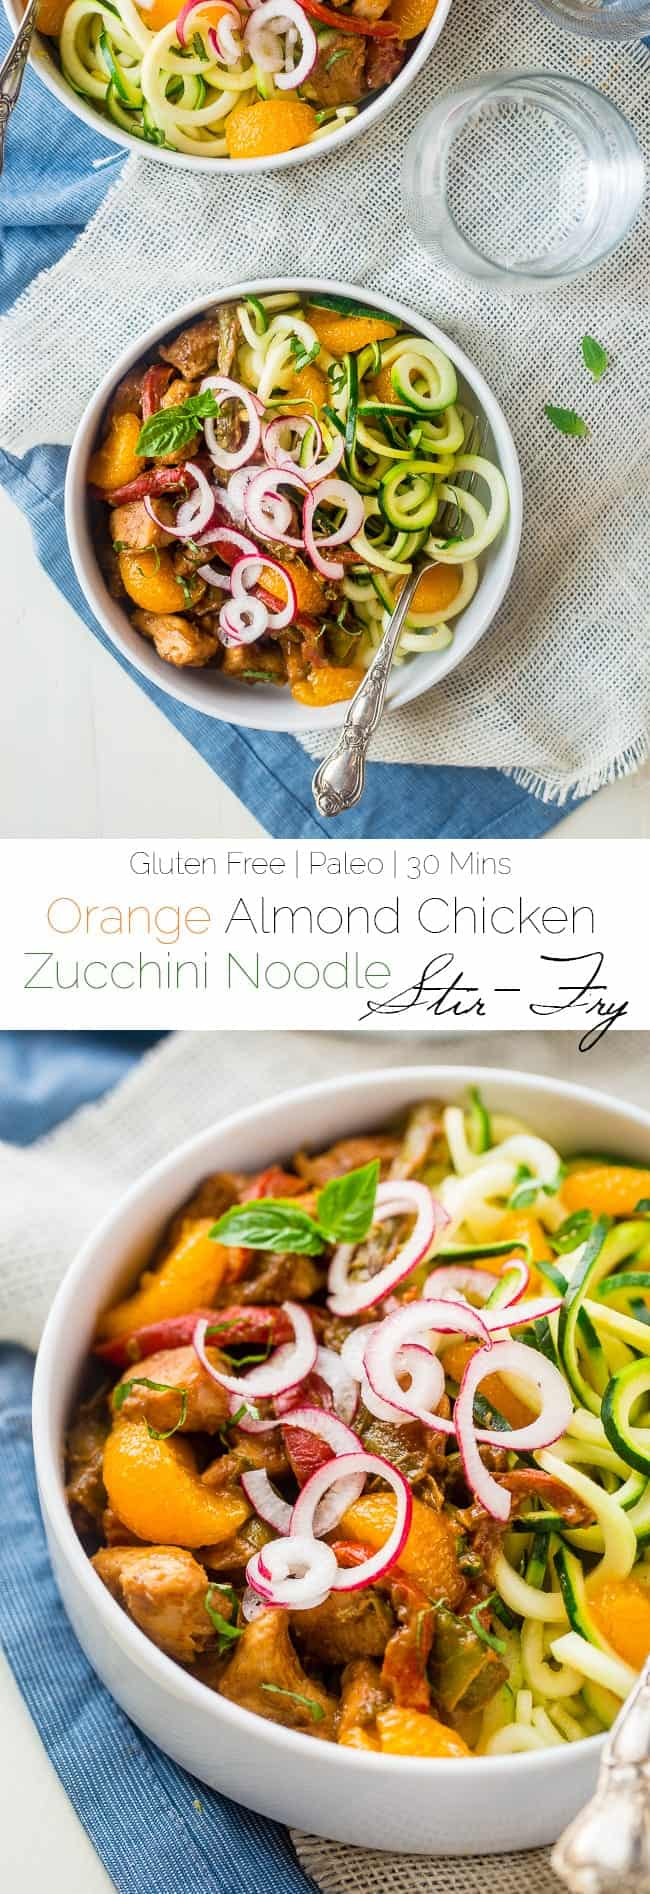 Orange Almond Chicken Stir Fry with Zucchini Noodles - This healthy chicken stir fry has spring vegetables and a creamy, orange almond & Dijon sauce. Serve it over zucchini noodles for a healthy, Whole30 compliant, easy weeknight dinner! | Foodfaithfitness.com | @FoodFaithFit